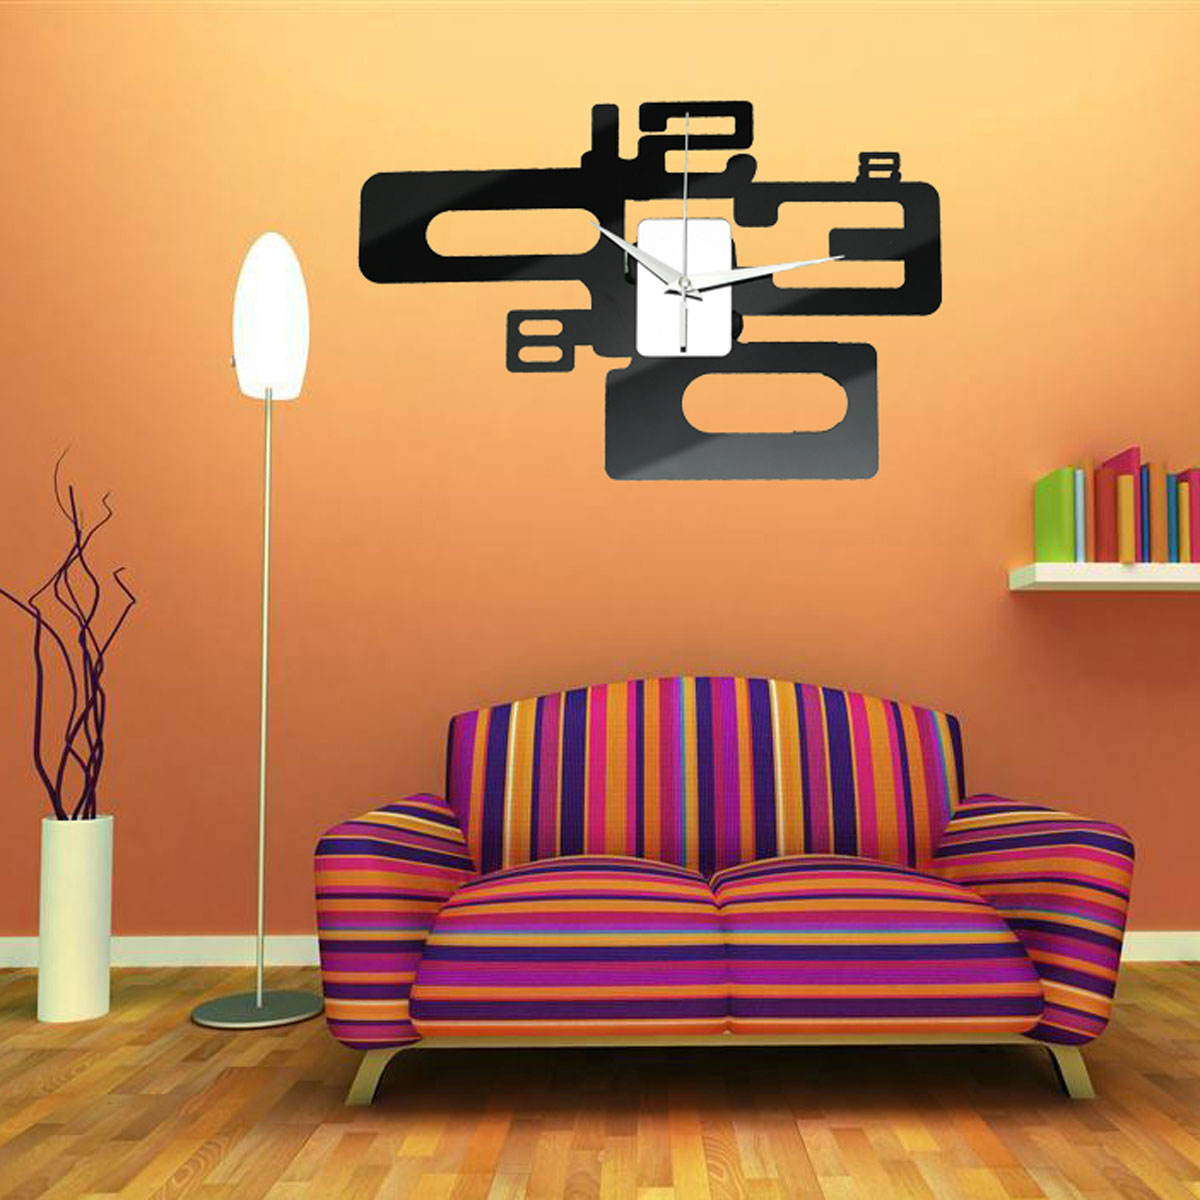 Modern Wall Sticker Templates, Where to Buy